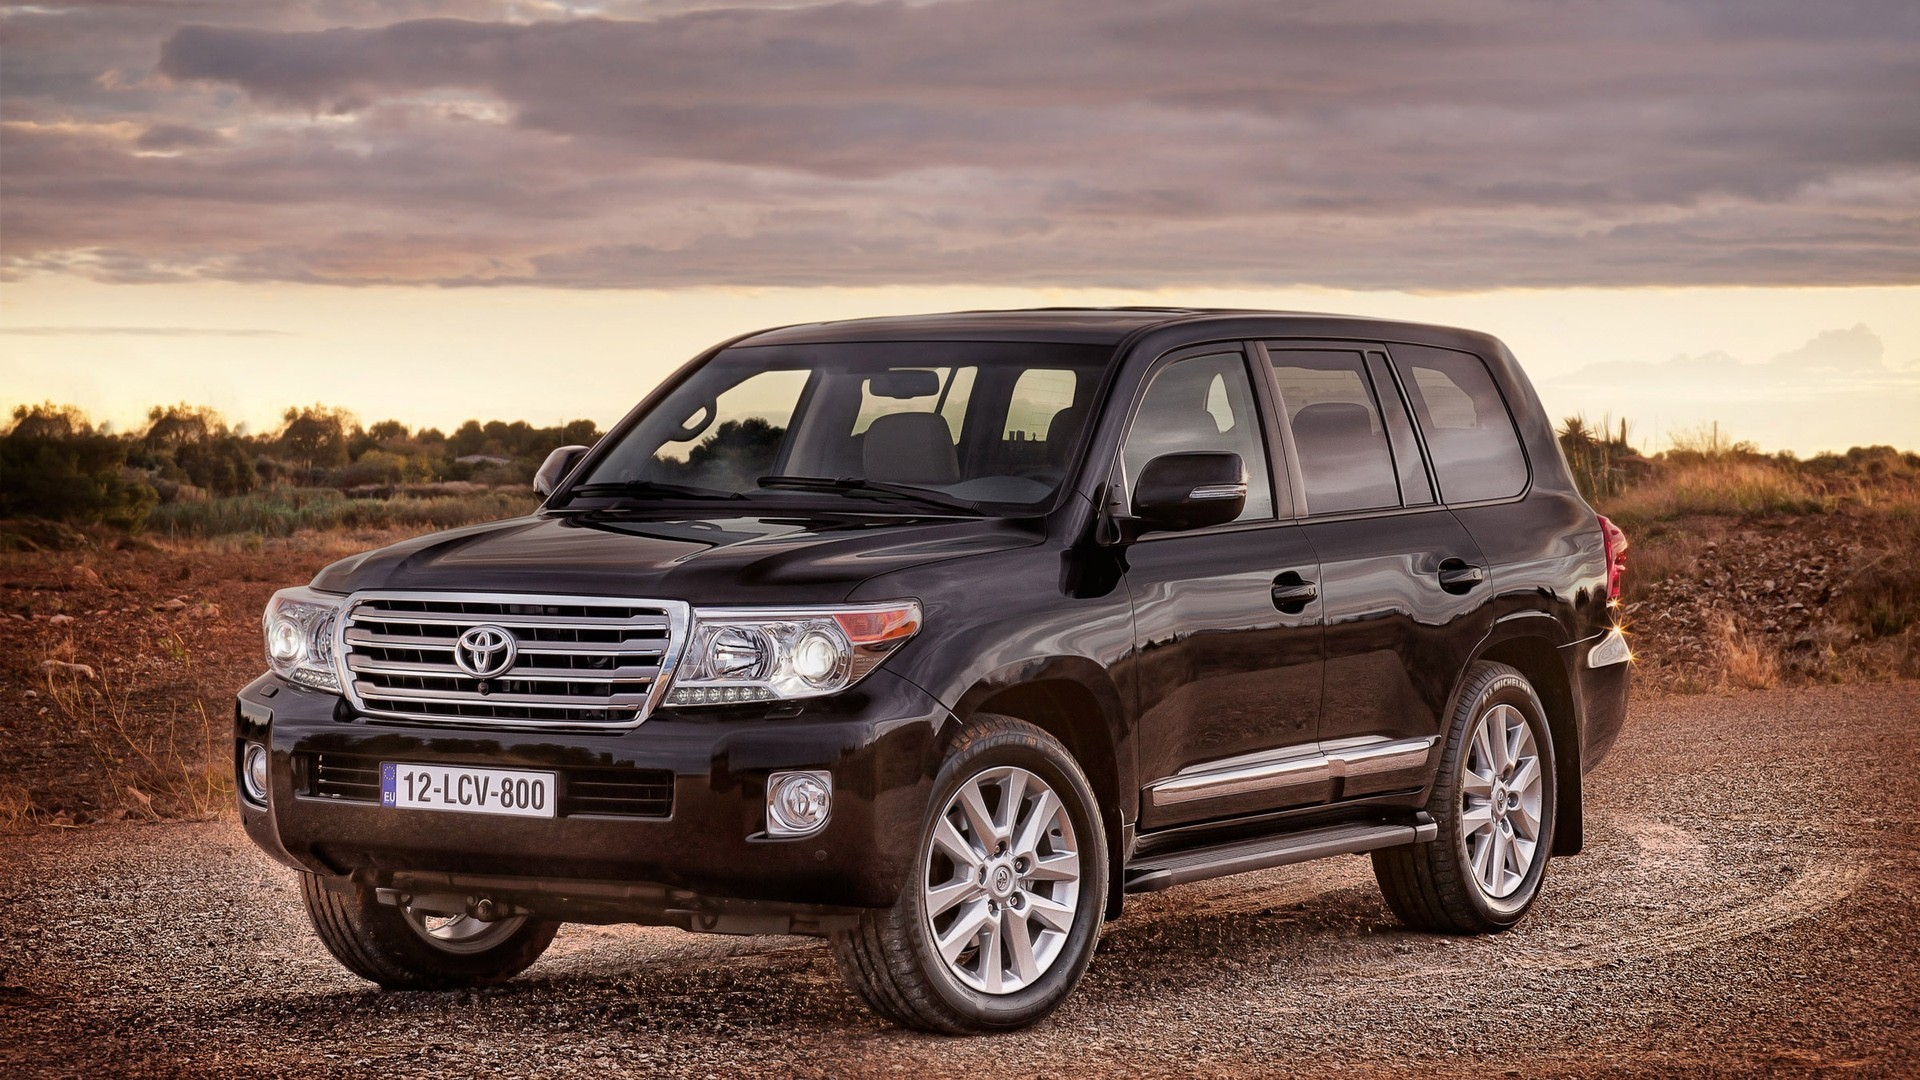 Cars Toyota Land Cruiser Wallpaper Allwallpaper In 7843 Pc En